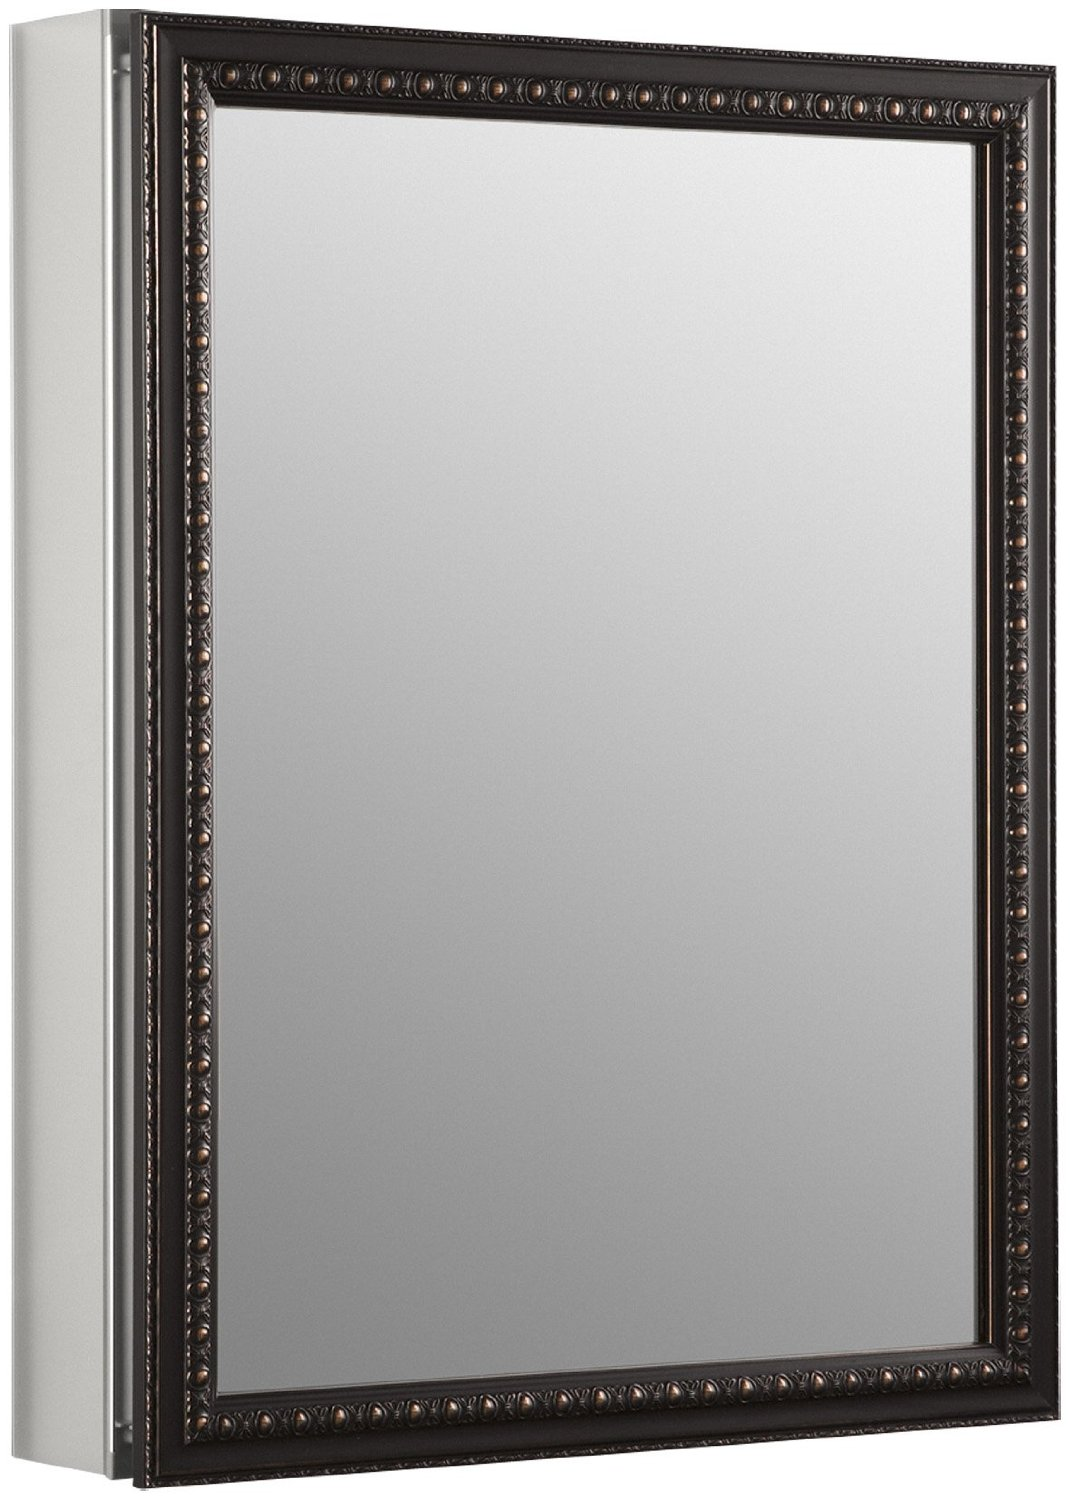 10 Best Kohler Medicine Cabinets - Full Reviews [2017]